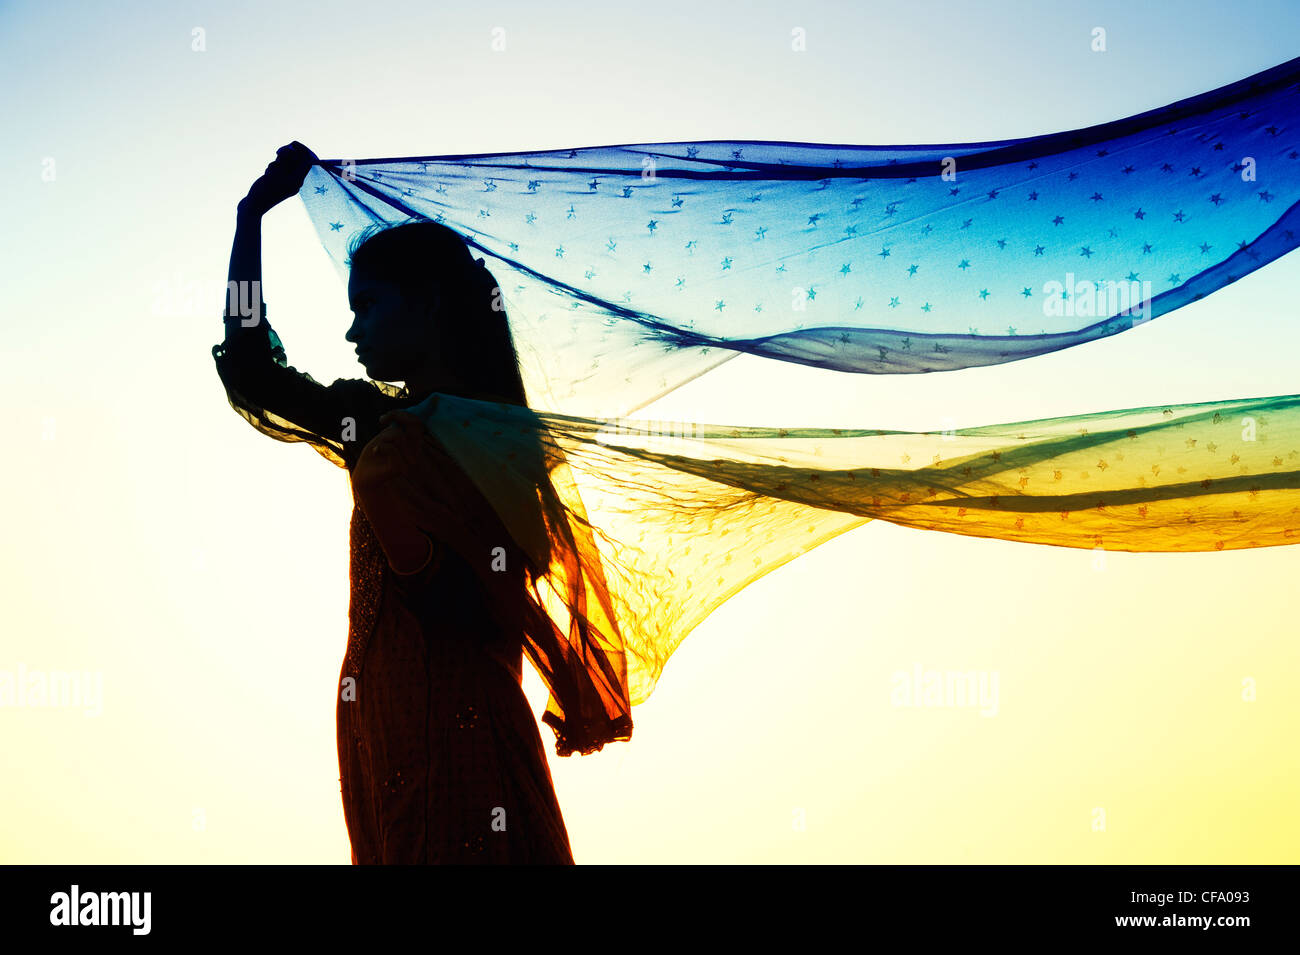 Indian girl with star des voiles dans le vent. Silhouette Photo Stock